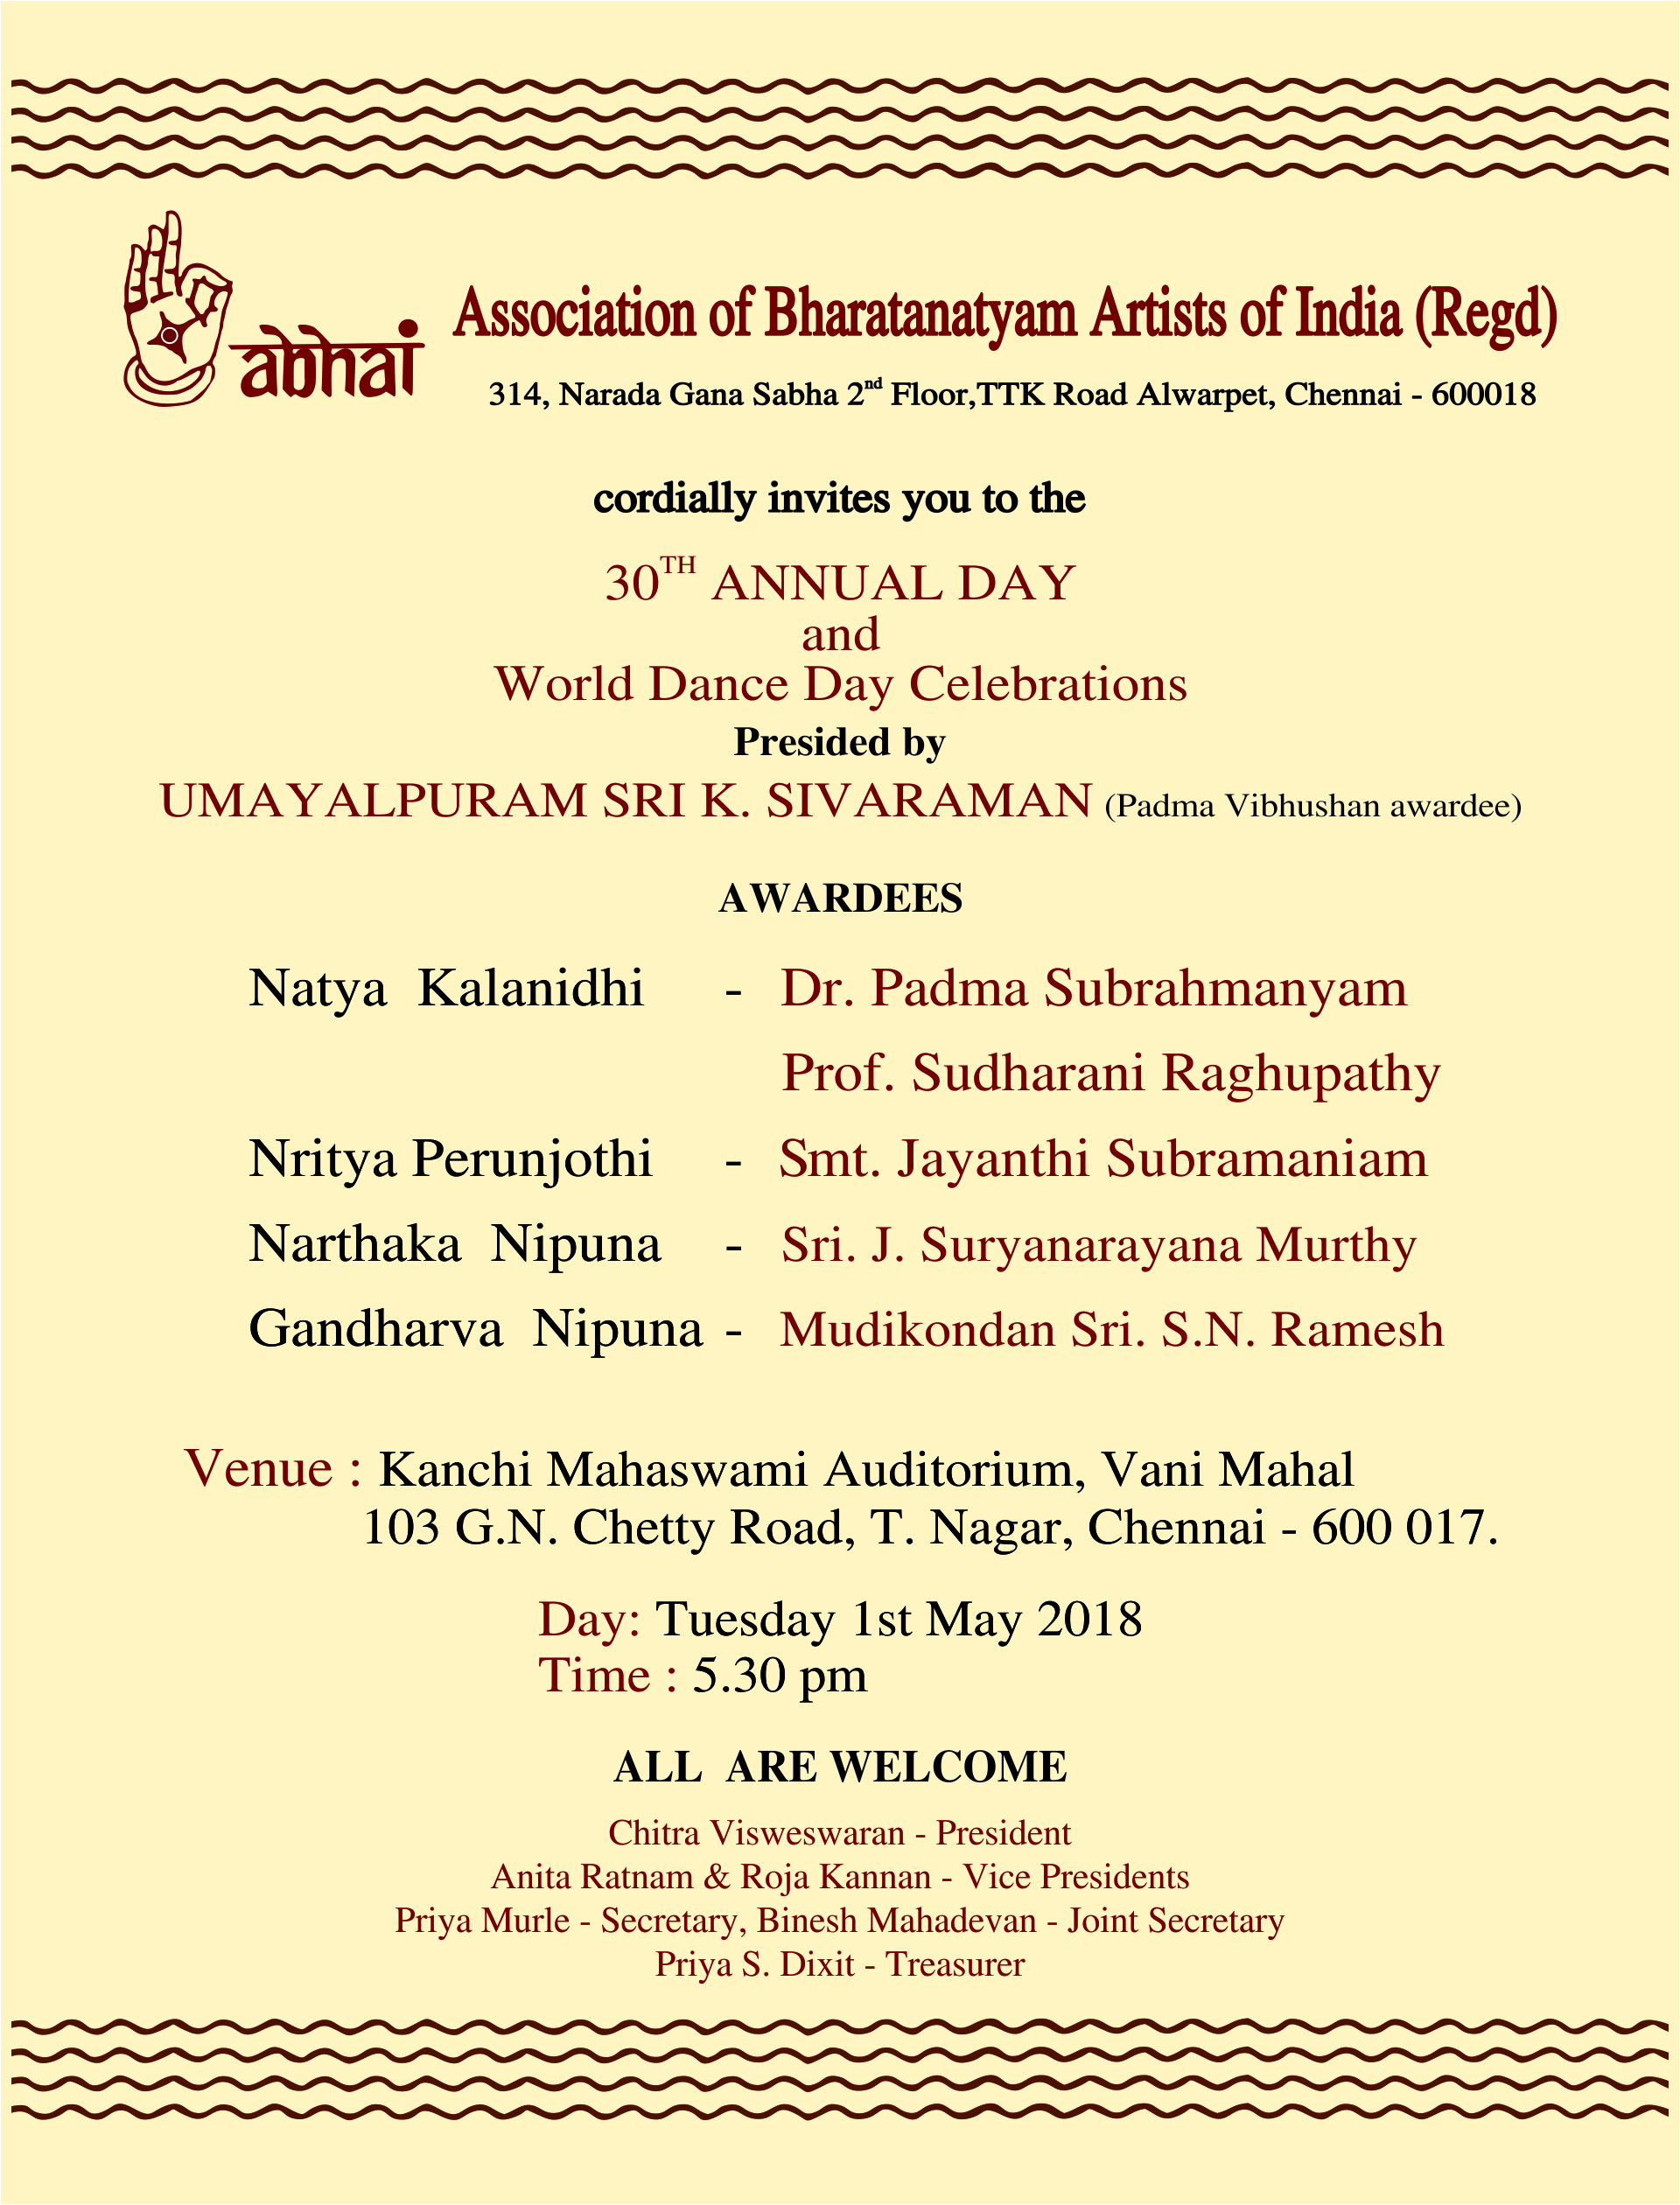 Abhai 30th Annual day celebrations